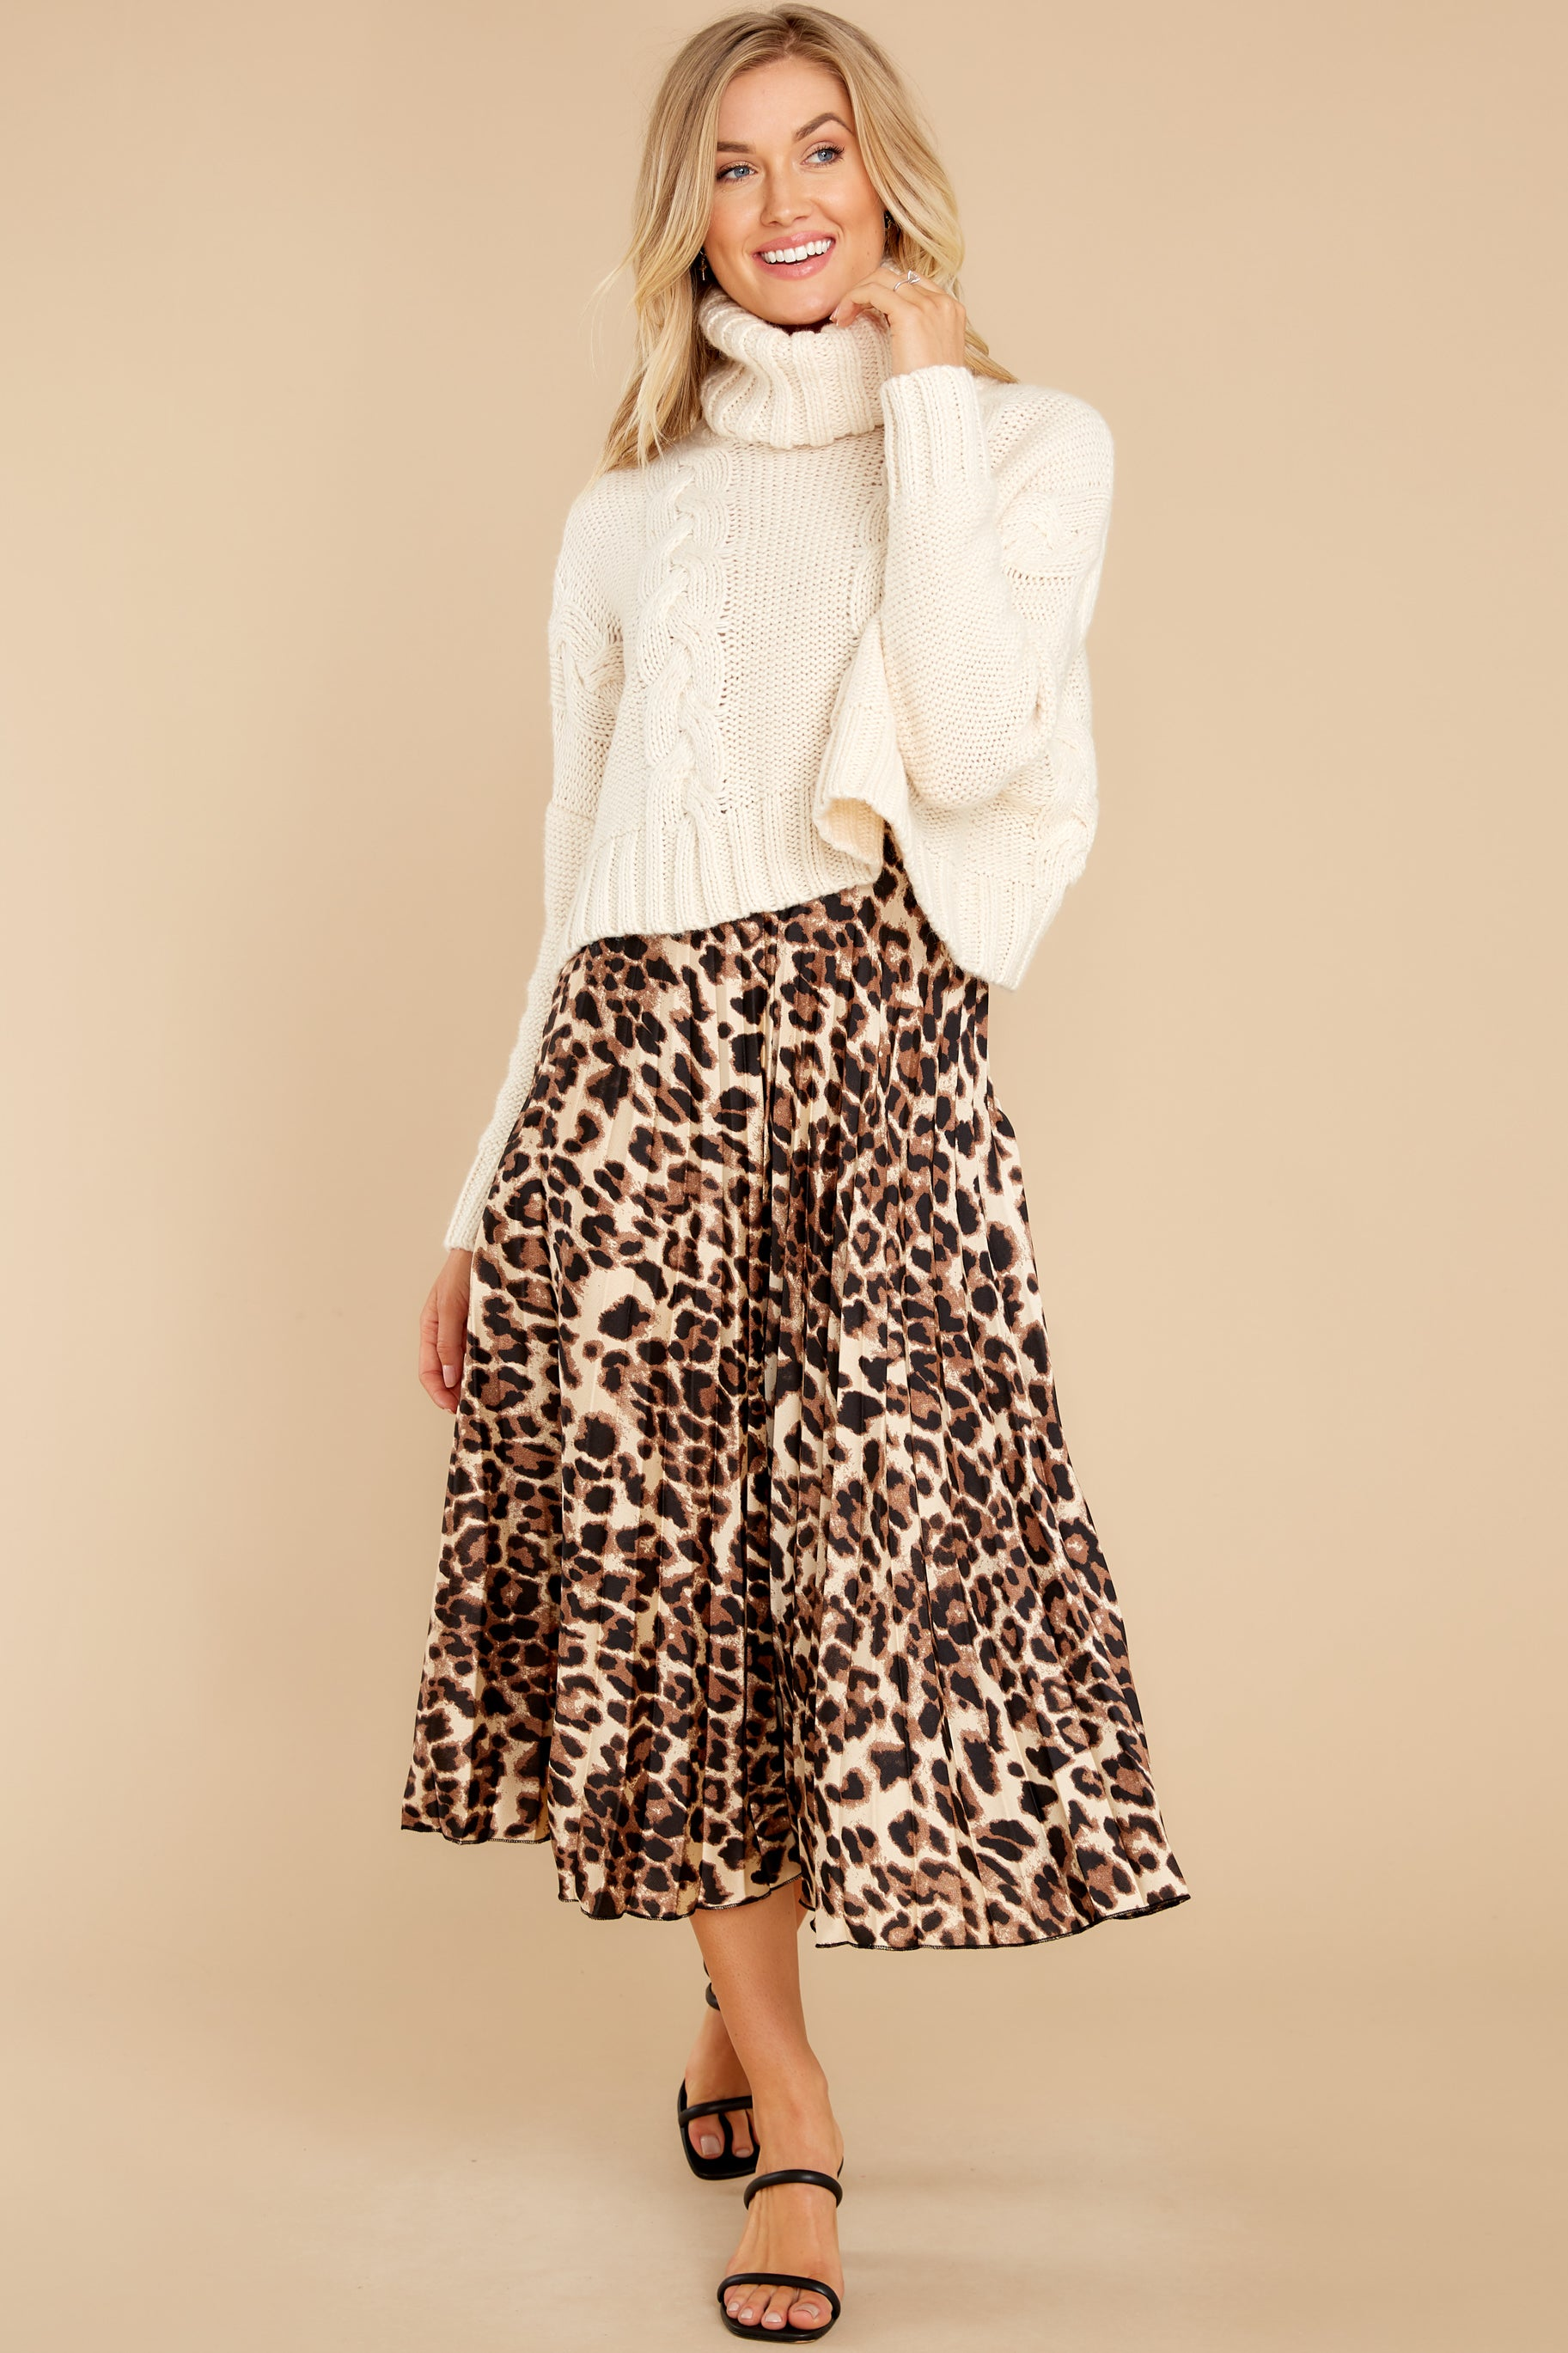 6 Act Wildly Leopard Print Midi Skirt at reddress.com